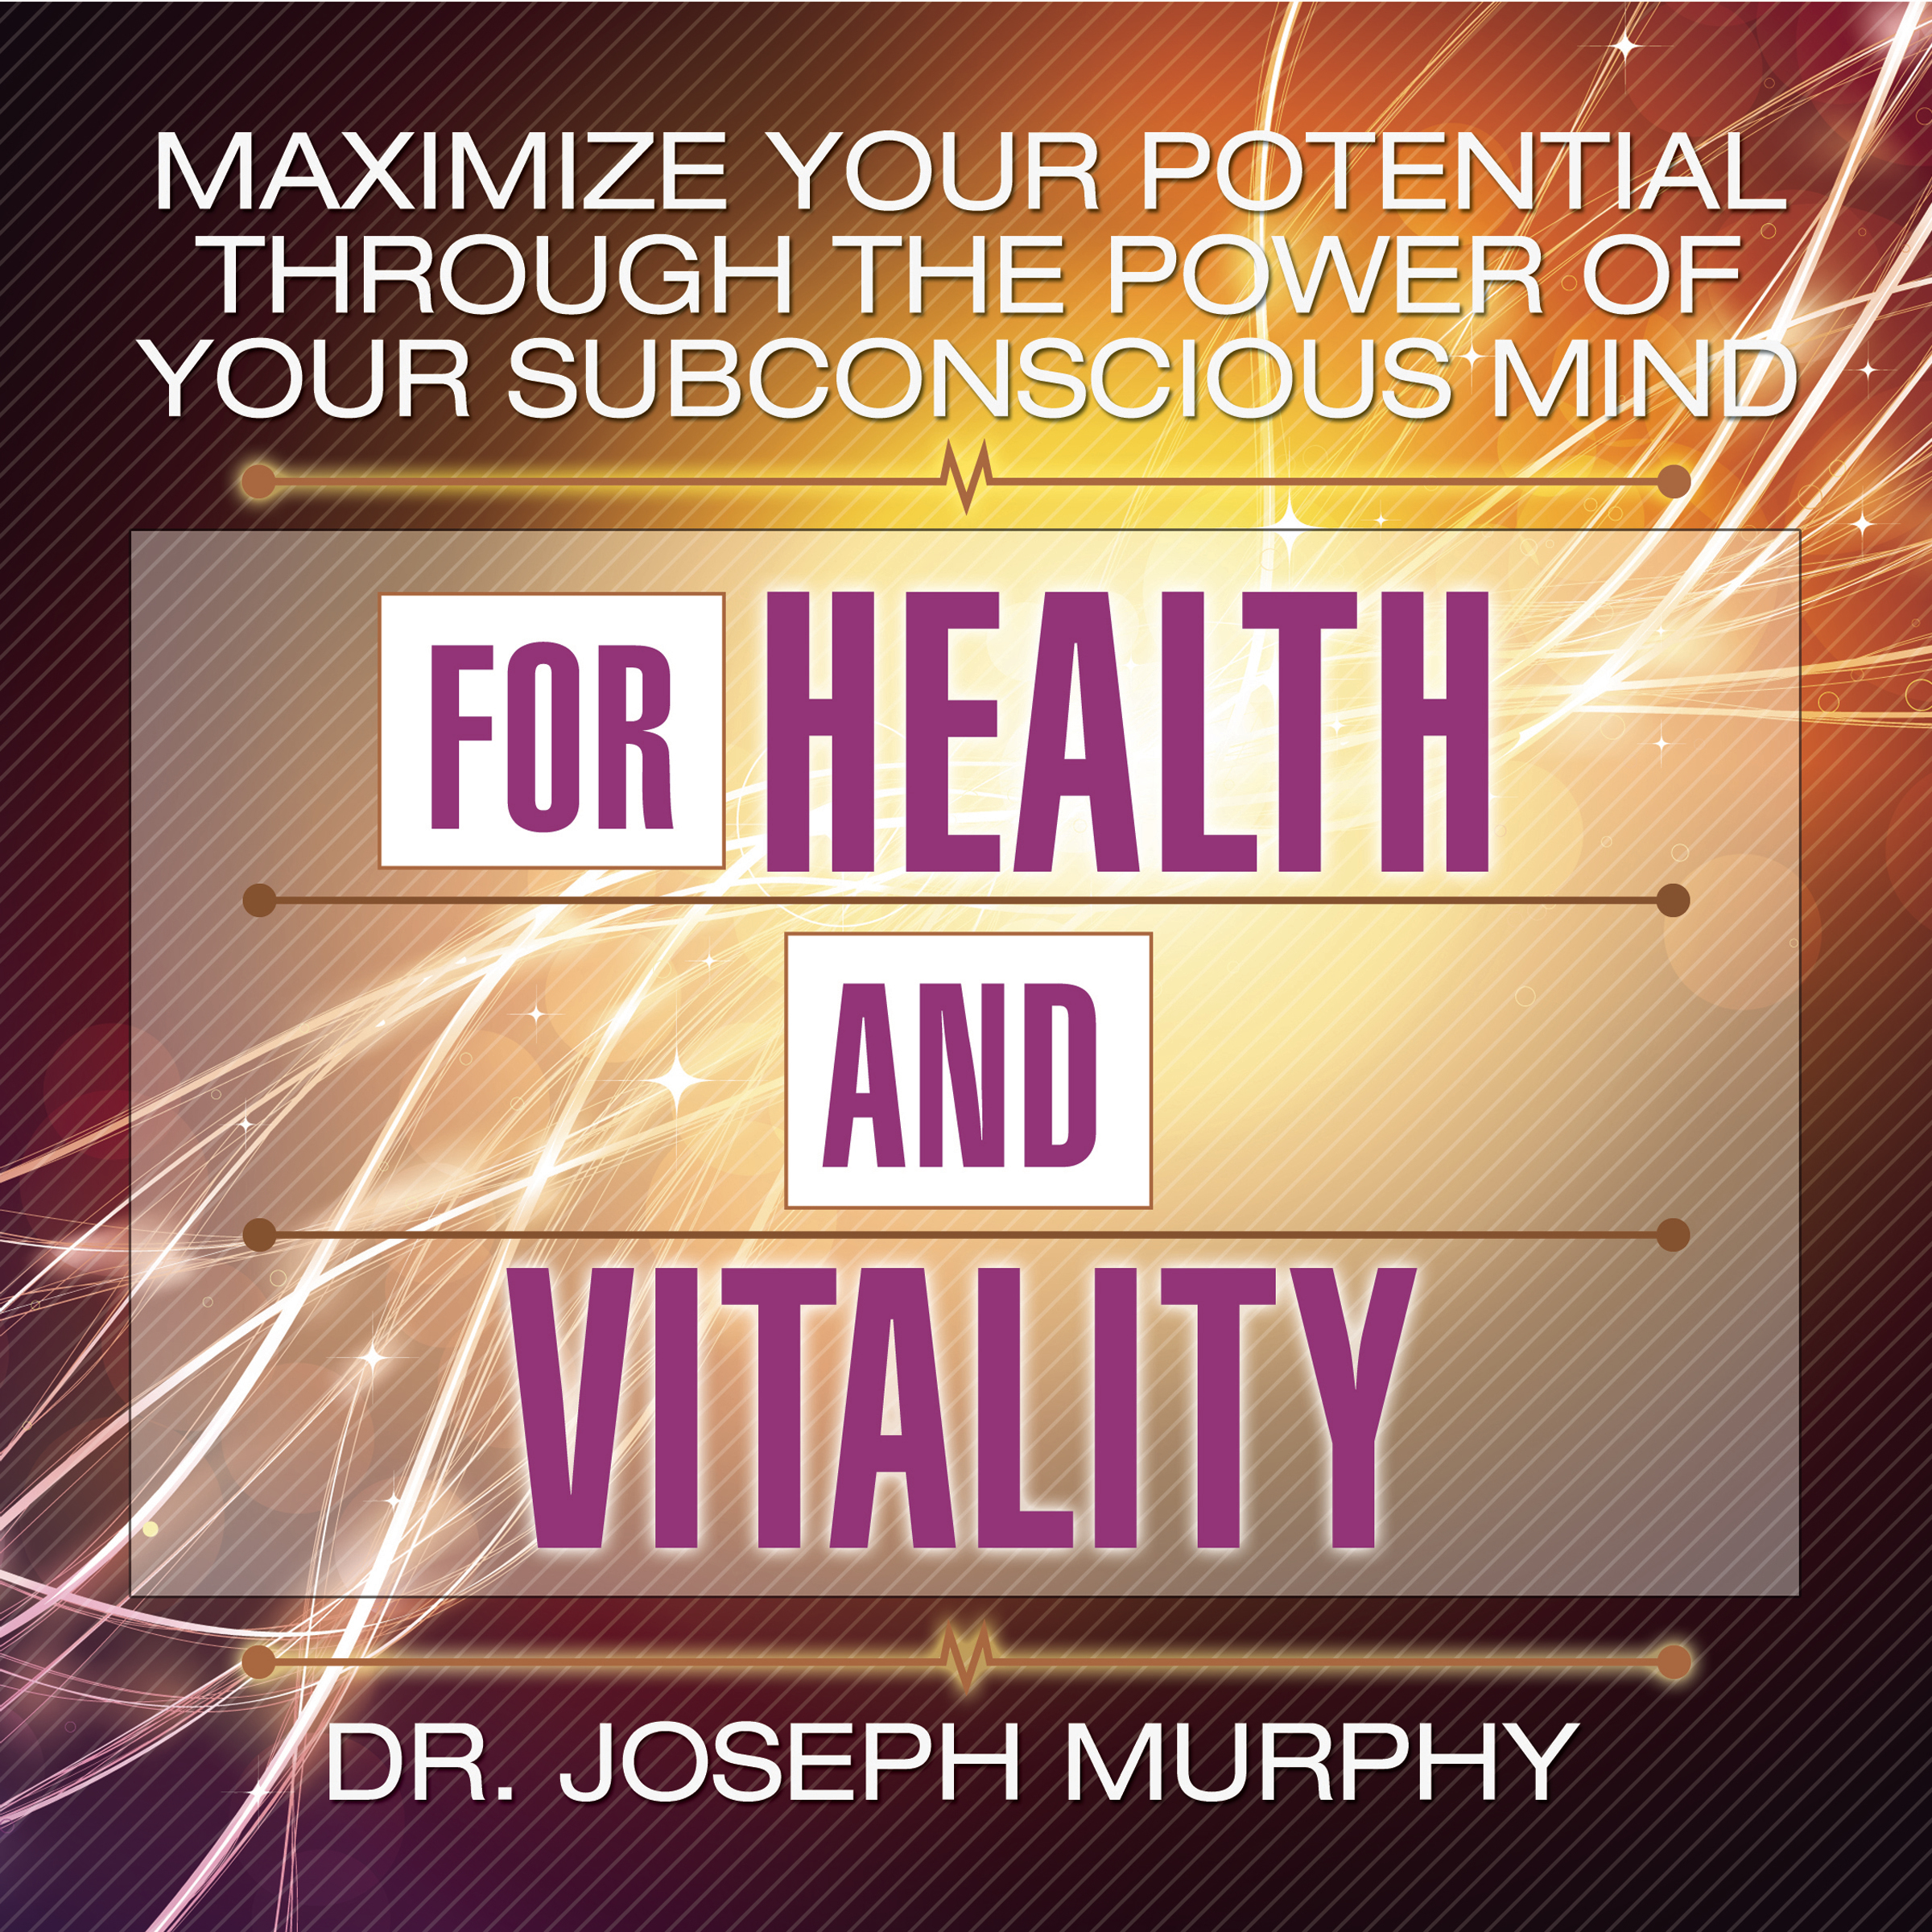 Printable Maximize Your Potential Through the Power of Your Subconscious Mind for Health and Vitality Audiobook Cover Art